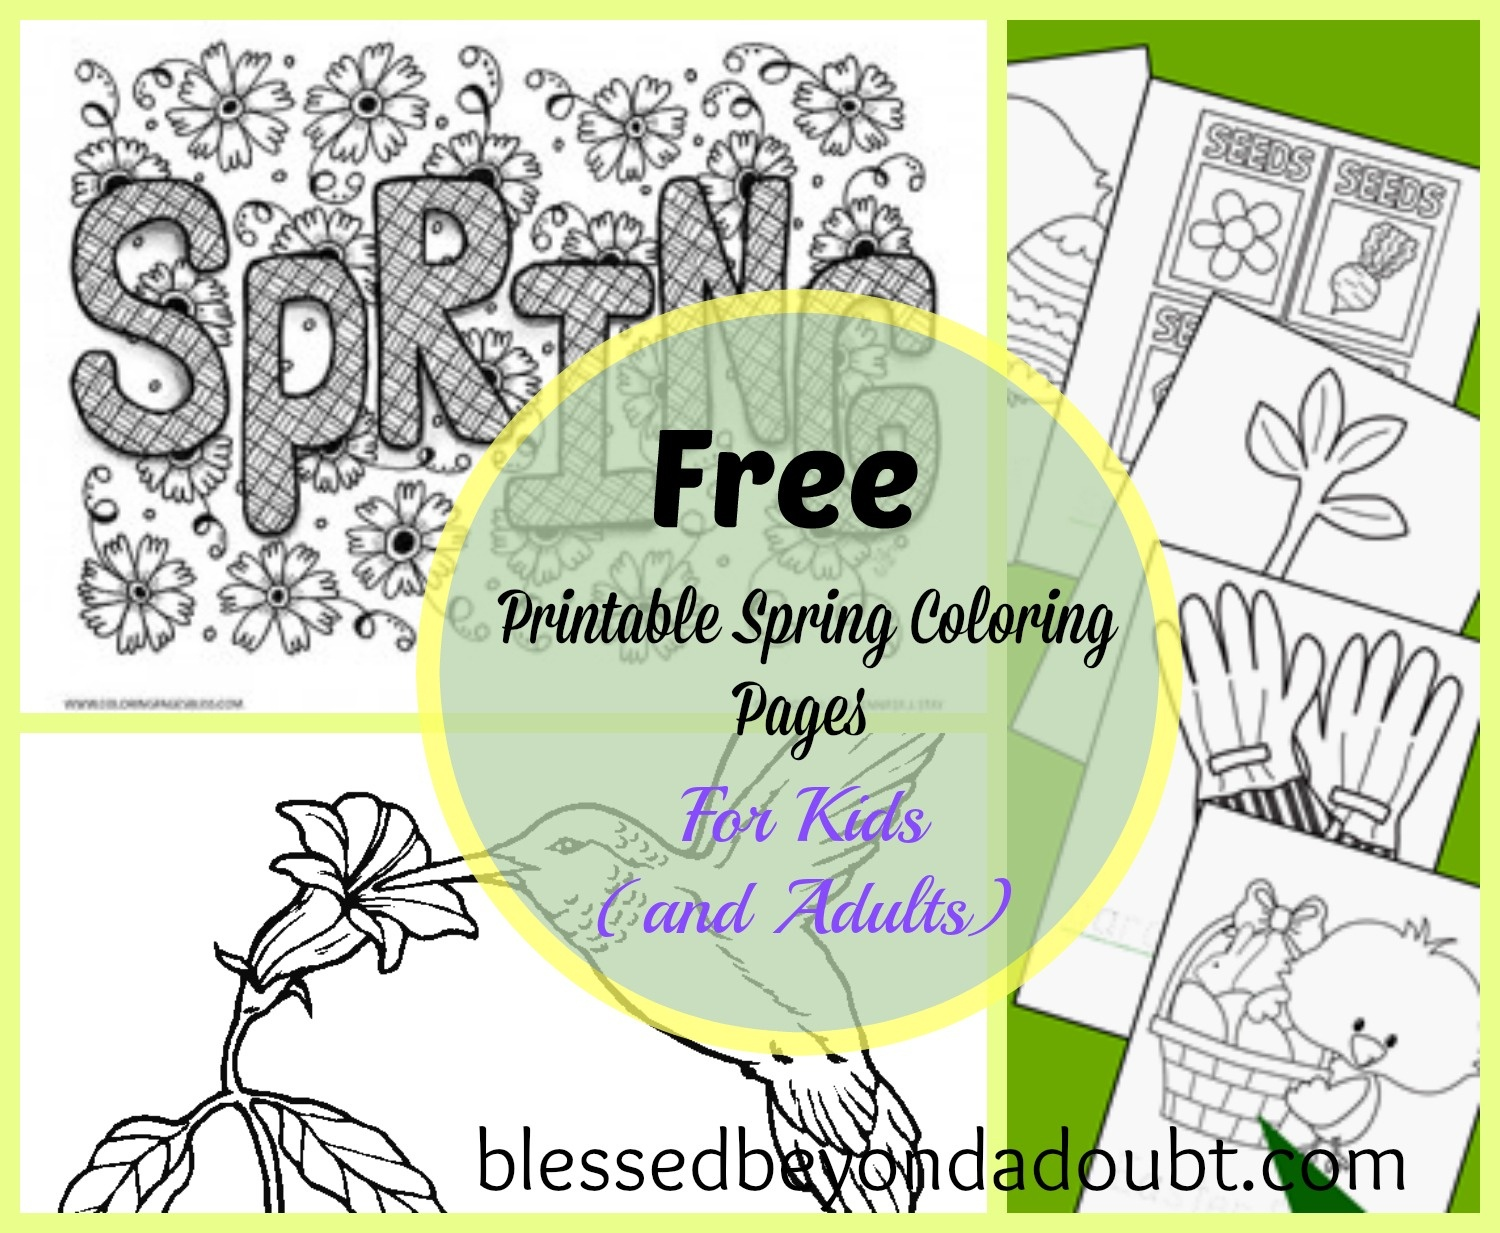 20 + Free Printable Spring Coloring Sheets For Kids (And Adults - Spring Coloring Sheets Free Printable